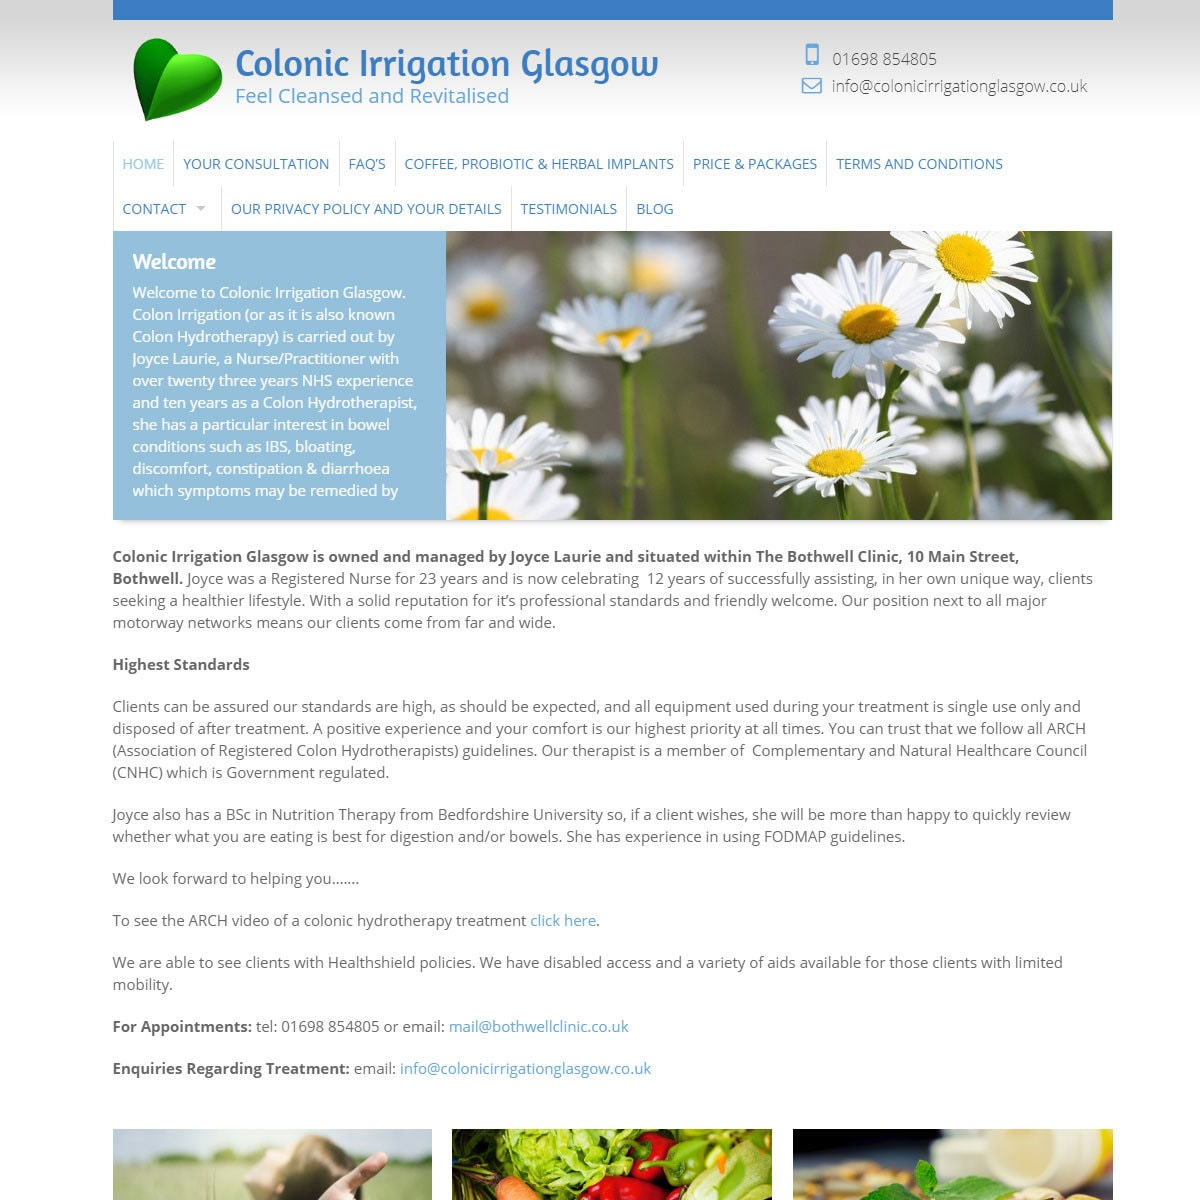 colonicirrigationglasgow